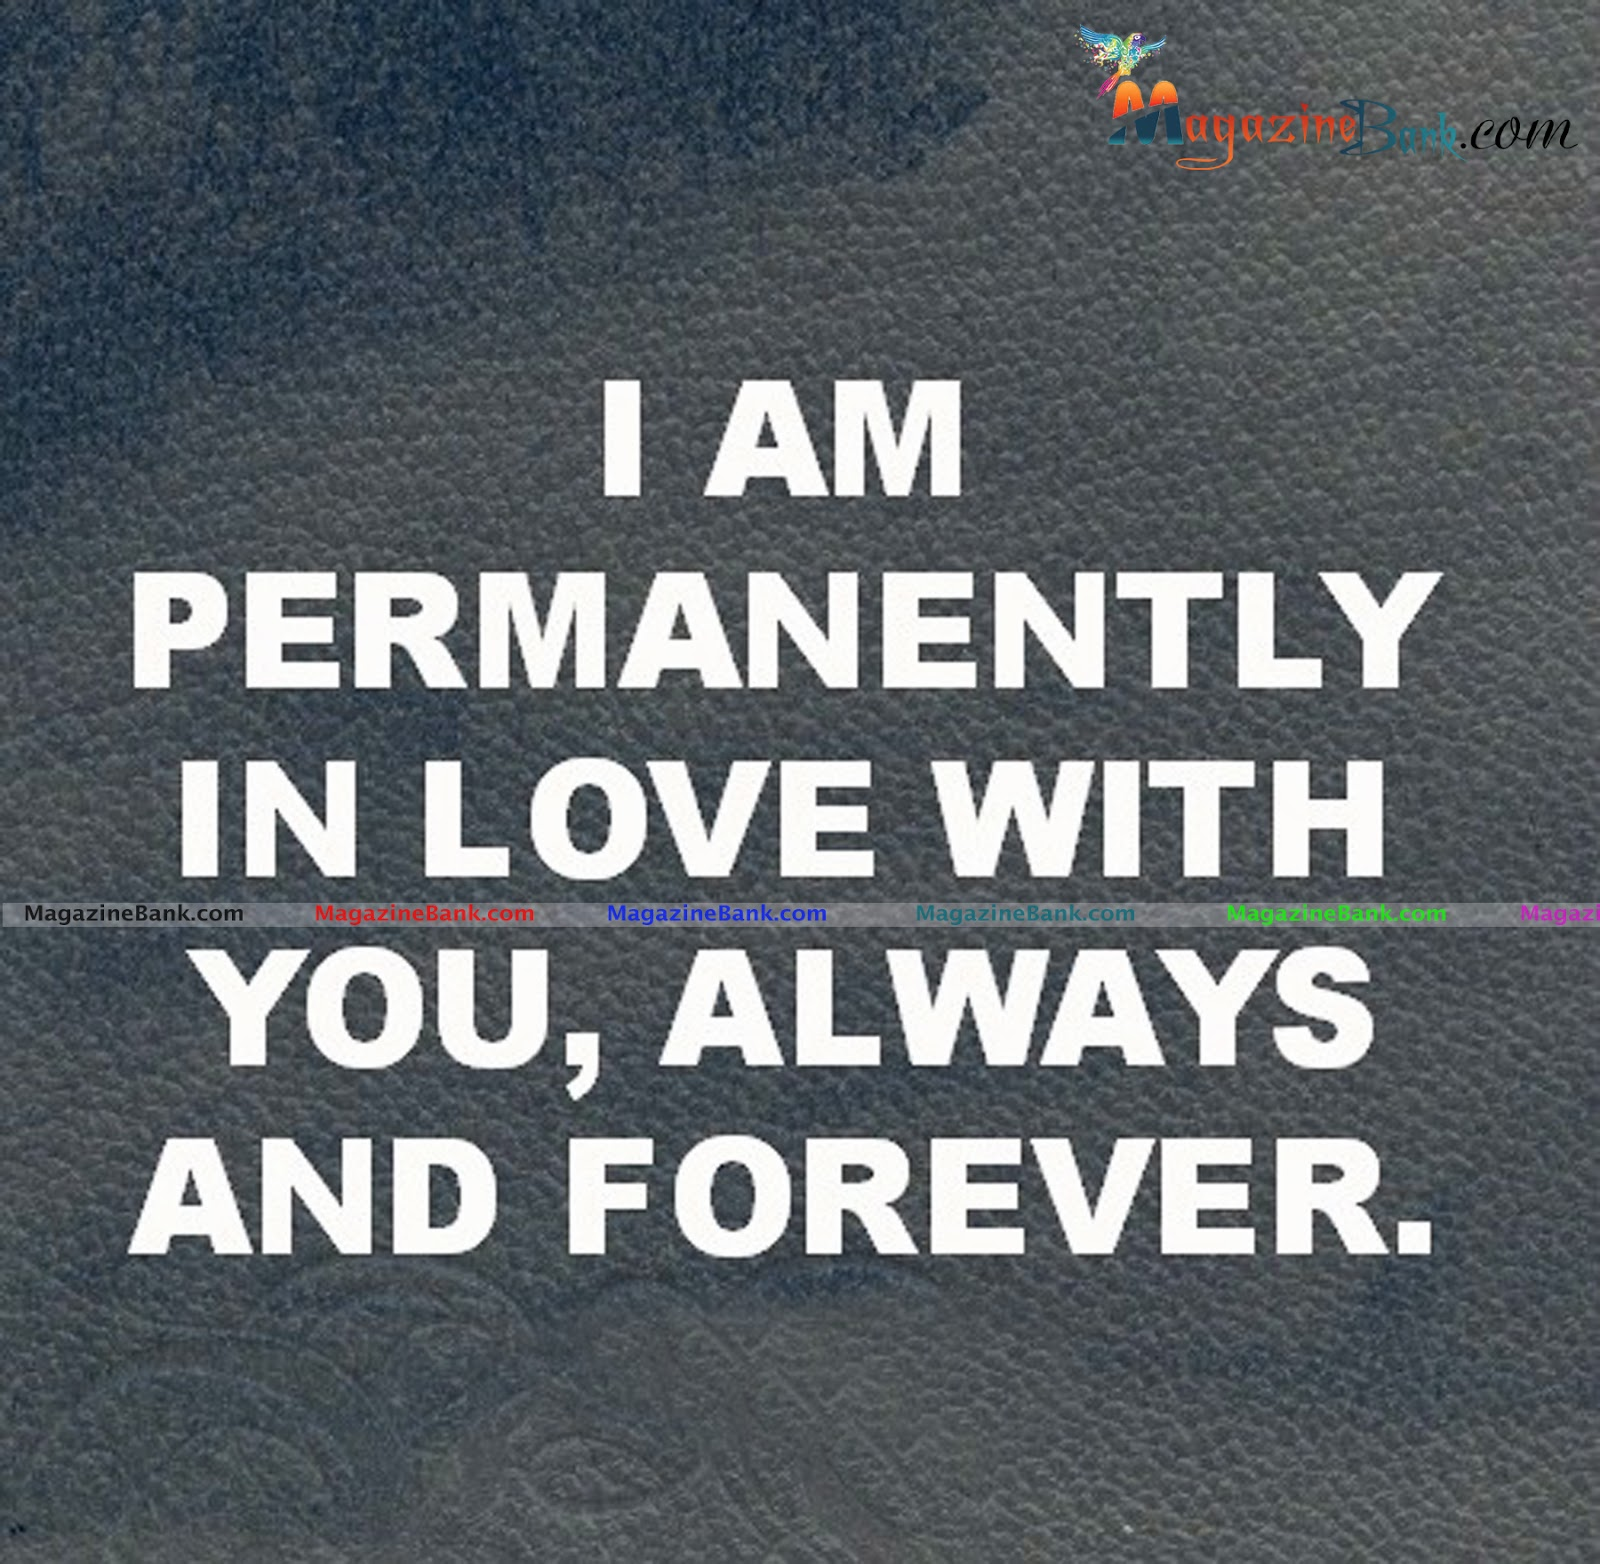 I Love You Quotes Cute: Cute Quotes Love You Forever. QuotesGram